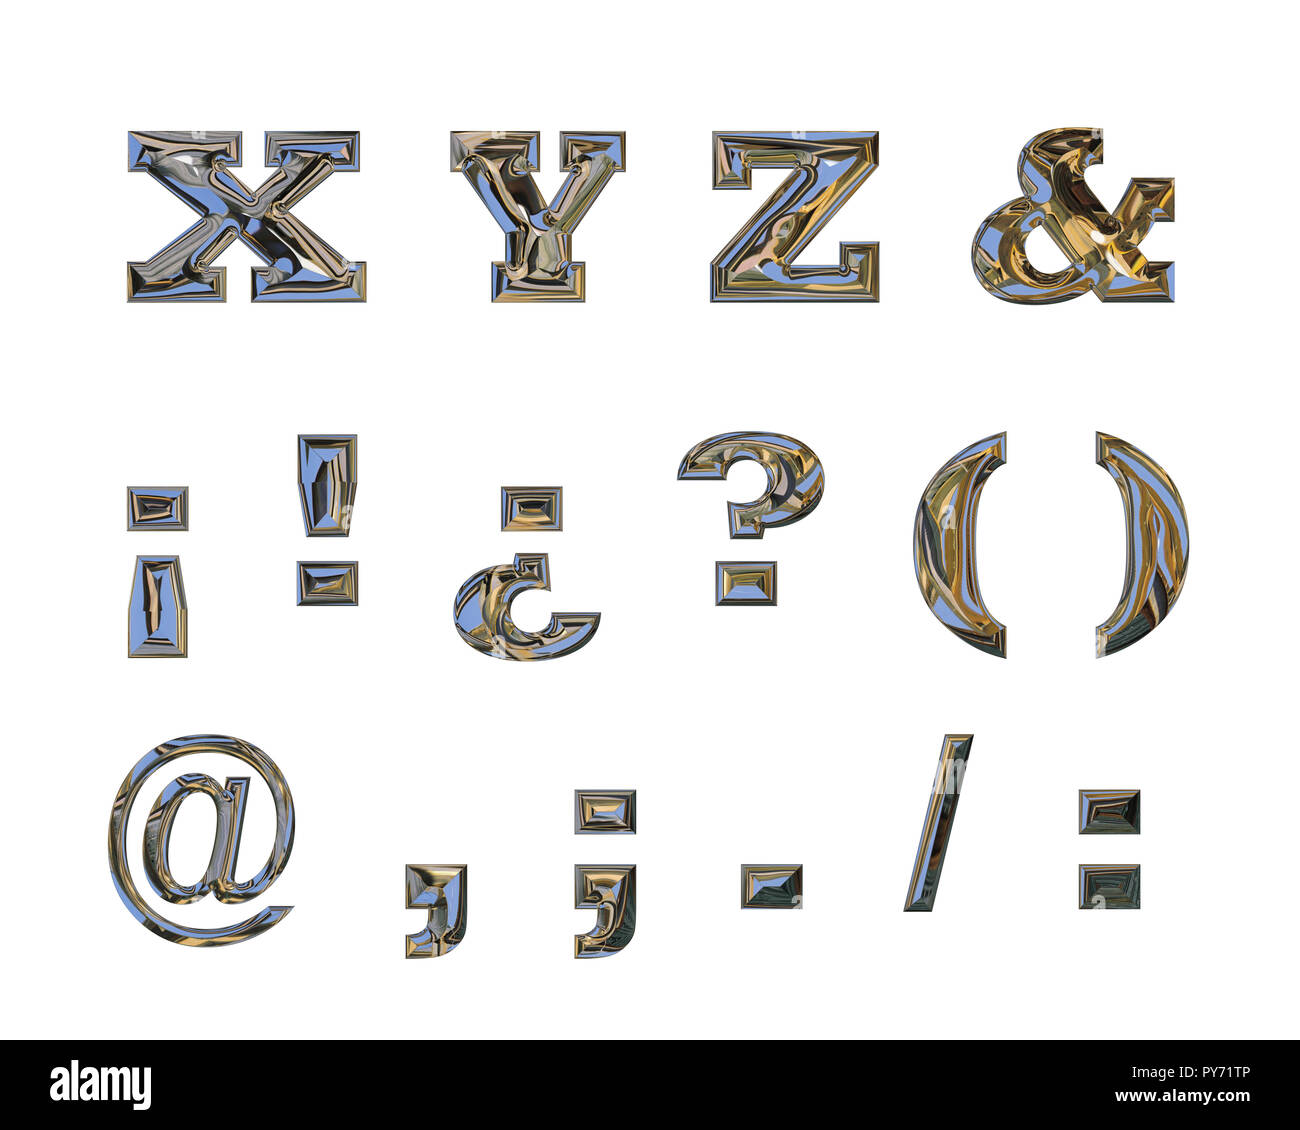 Capital letters X, Y, Z, and orthographic signs, made with liquid chrome effect - Stock Image